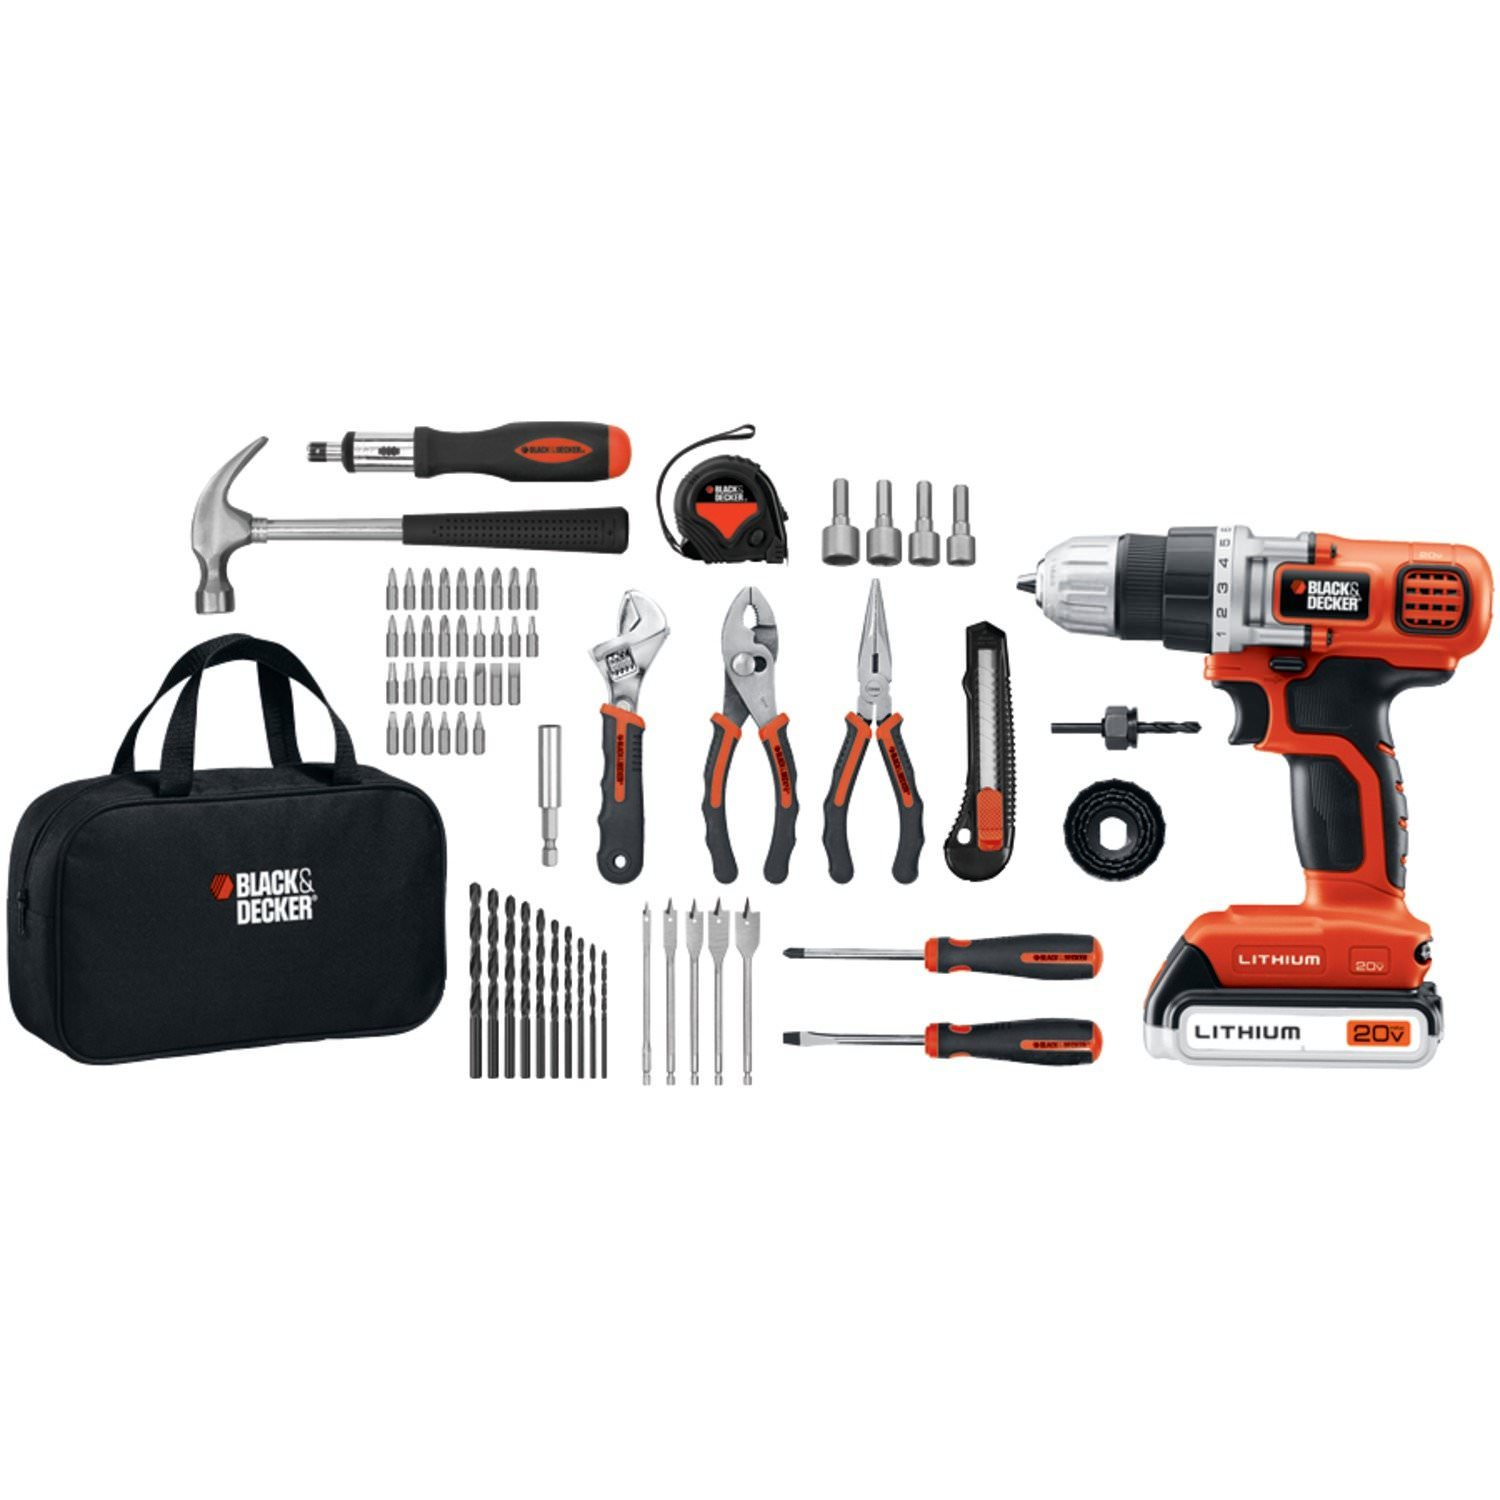 Black+Decker Ldx120 Pk 20 V Max* Lithium Ion Drill Driver And 66 Piece Project Kit by Black+Decker